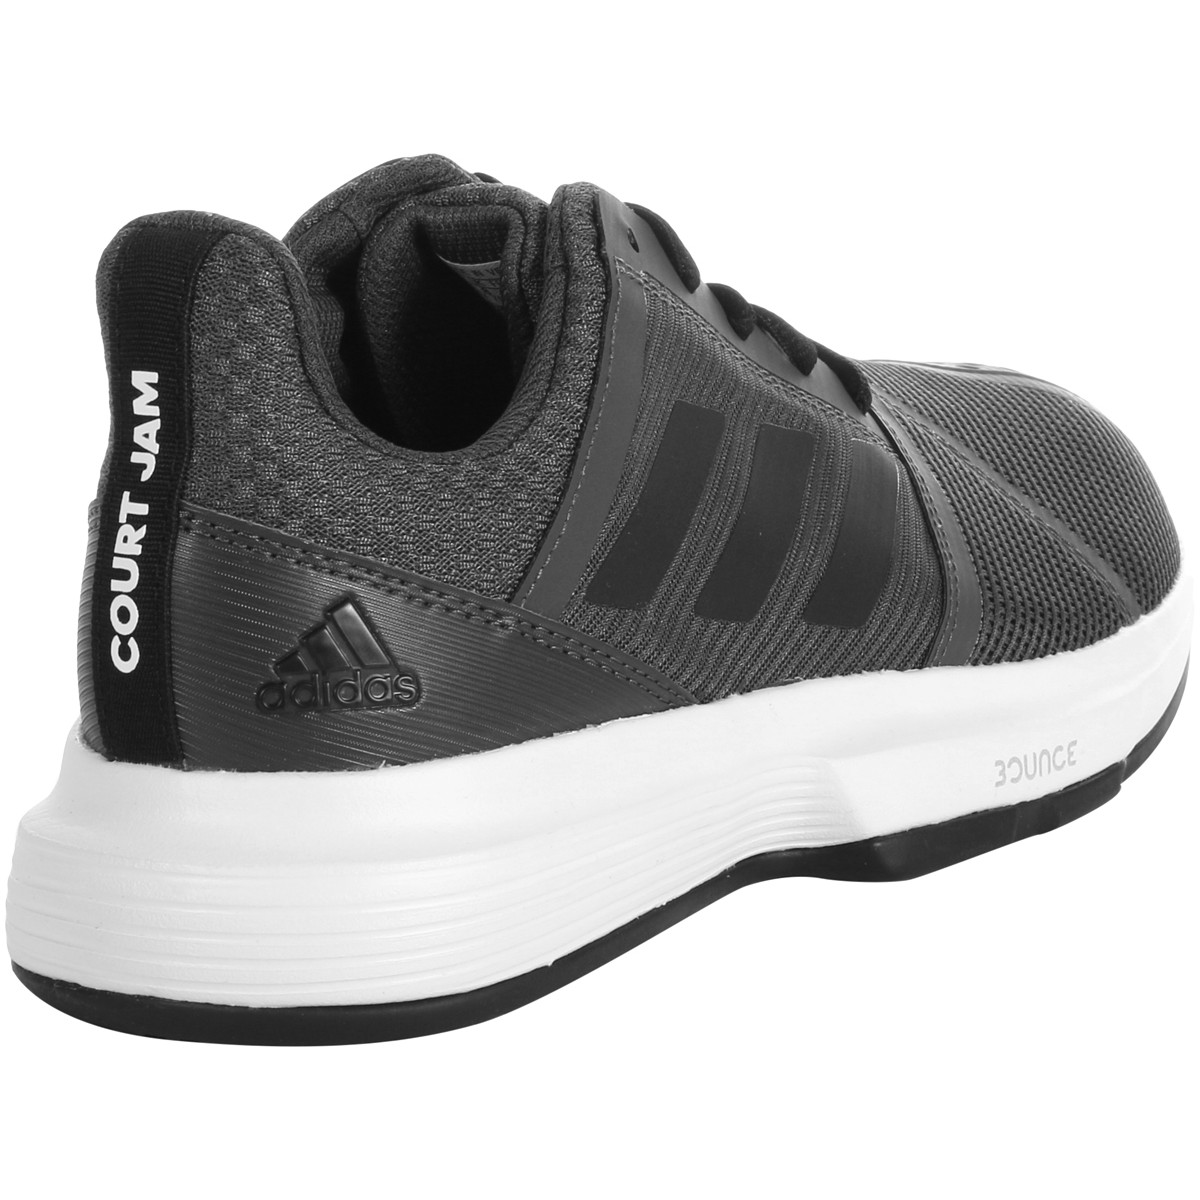 Manga Avenida dividir  ADIDAS COURTJAM BOUNCE CLAY COURT SHOES - Surstock : Chaussures - Surstock  | Tennispro